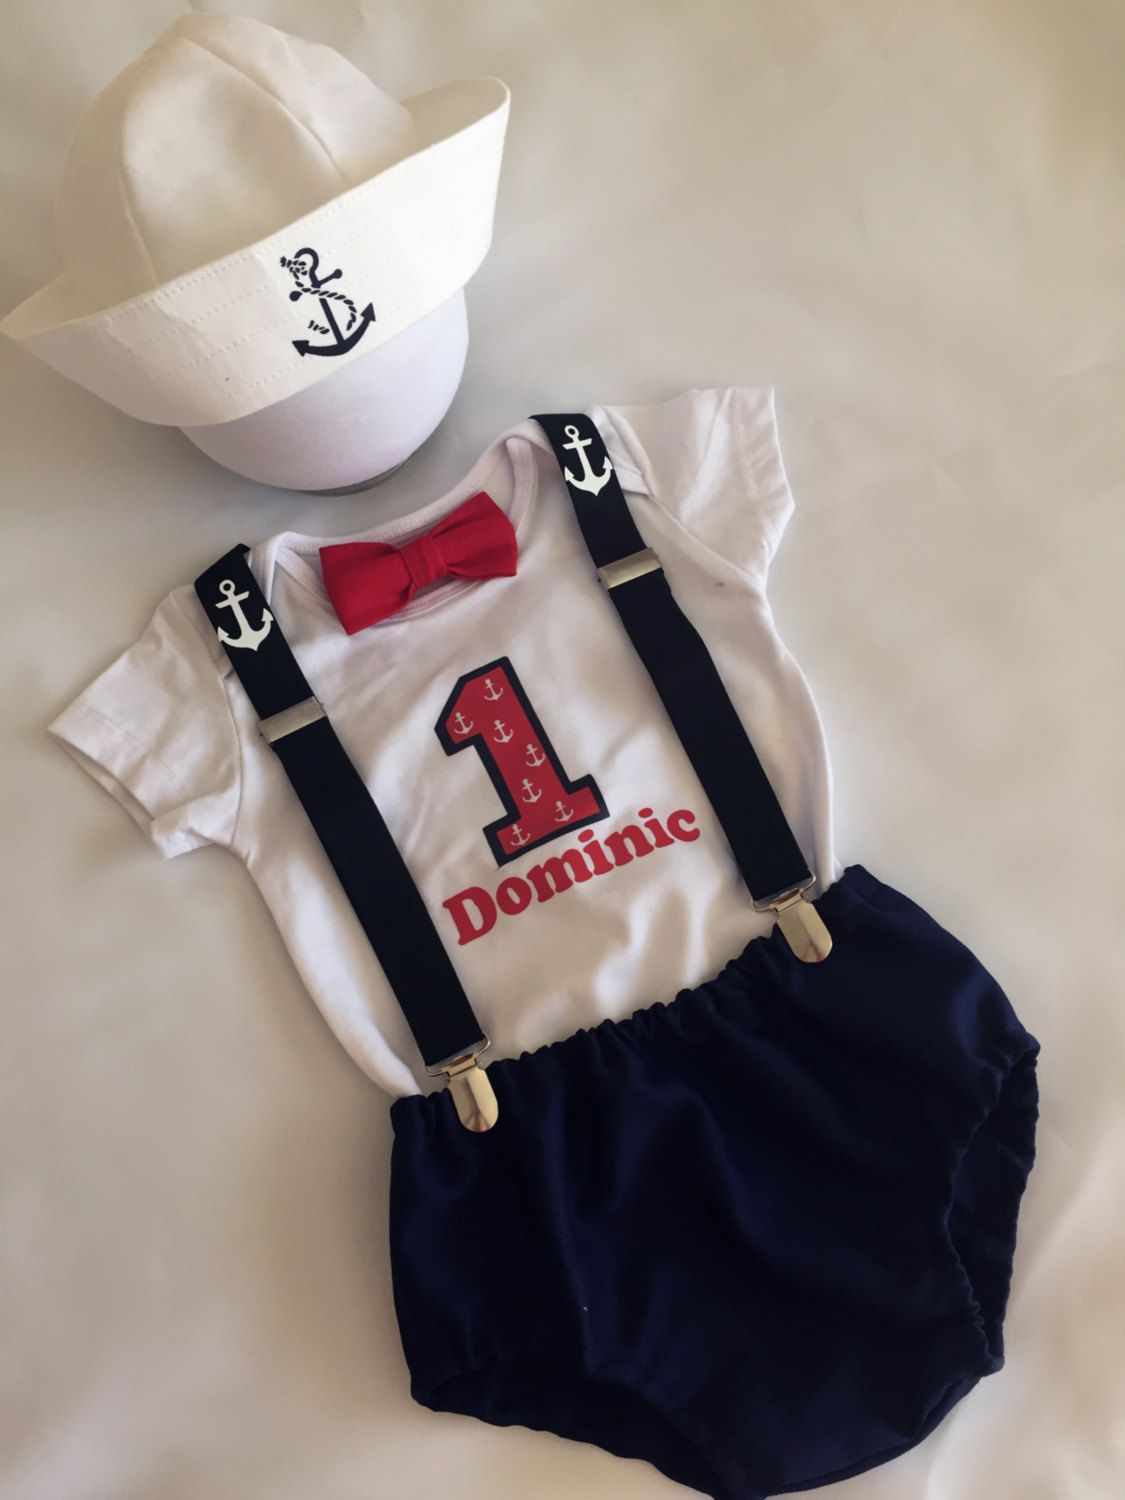 83977aa62 Personalised Sailor ...Baby boy 1st Birthday Outfit...1st Birthday dress  up...Cake Smash Outfit...Baby photo shoot outfit... by BuBBlingBoutique on  Etsy